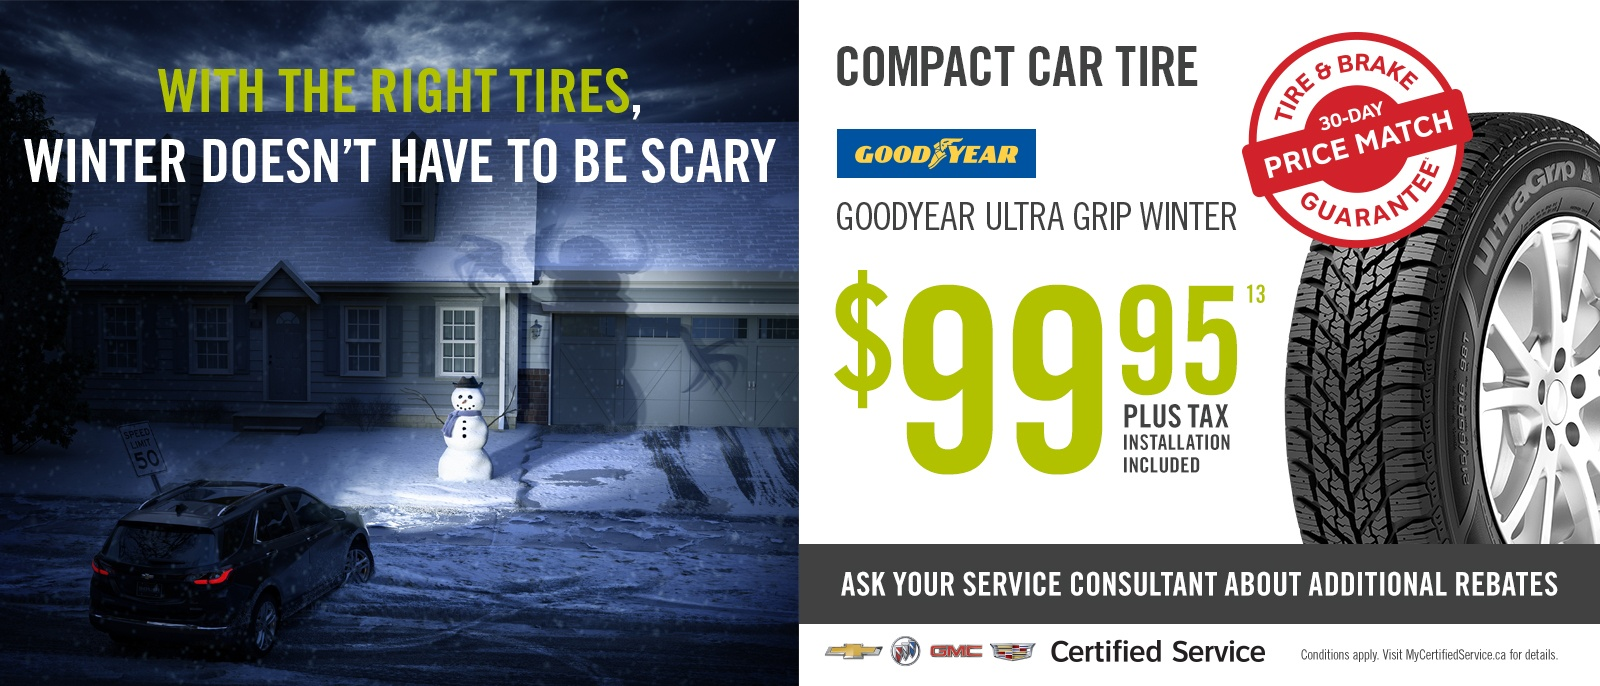 Winter Tire Specials Cars